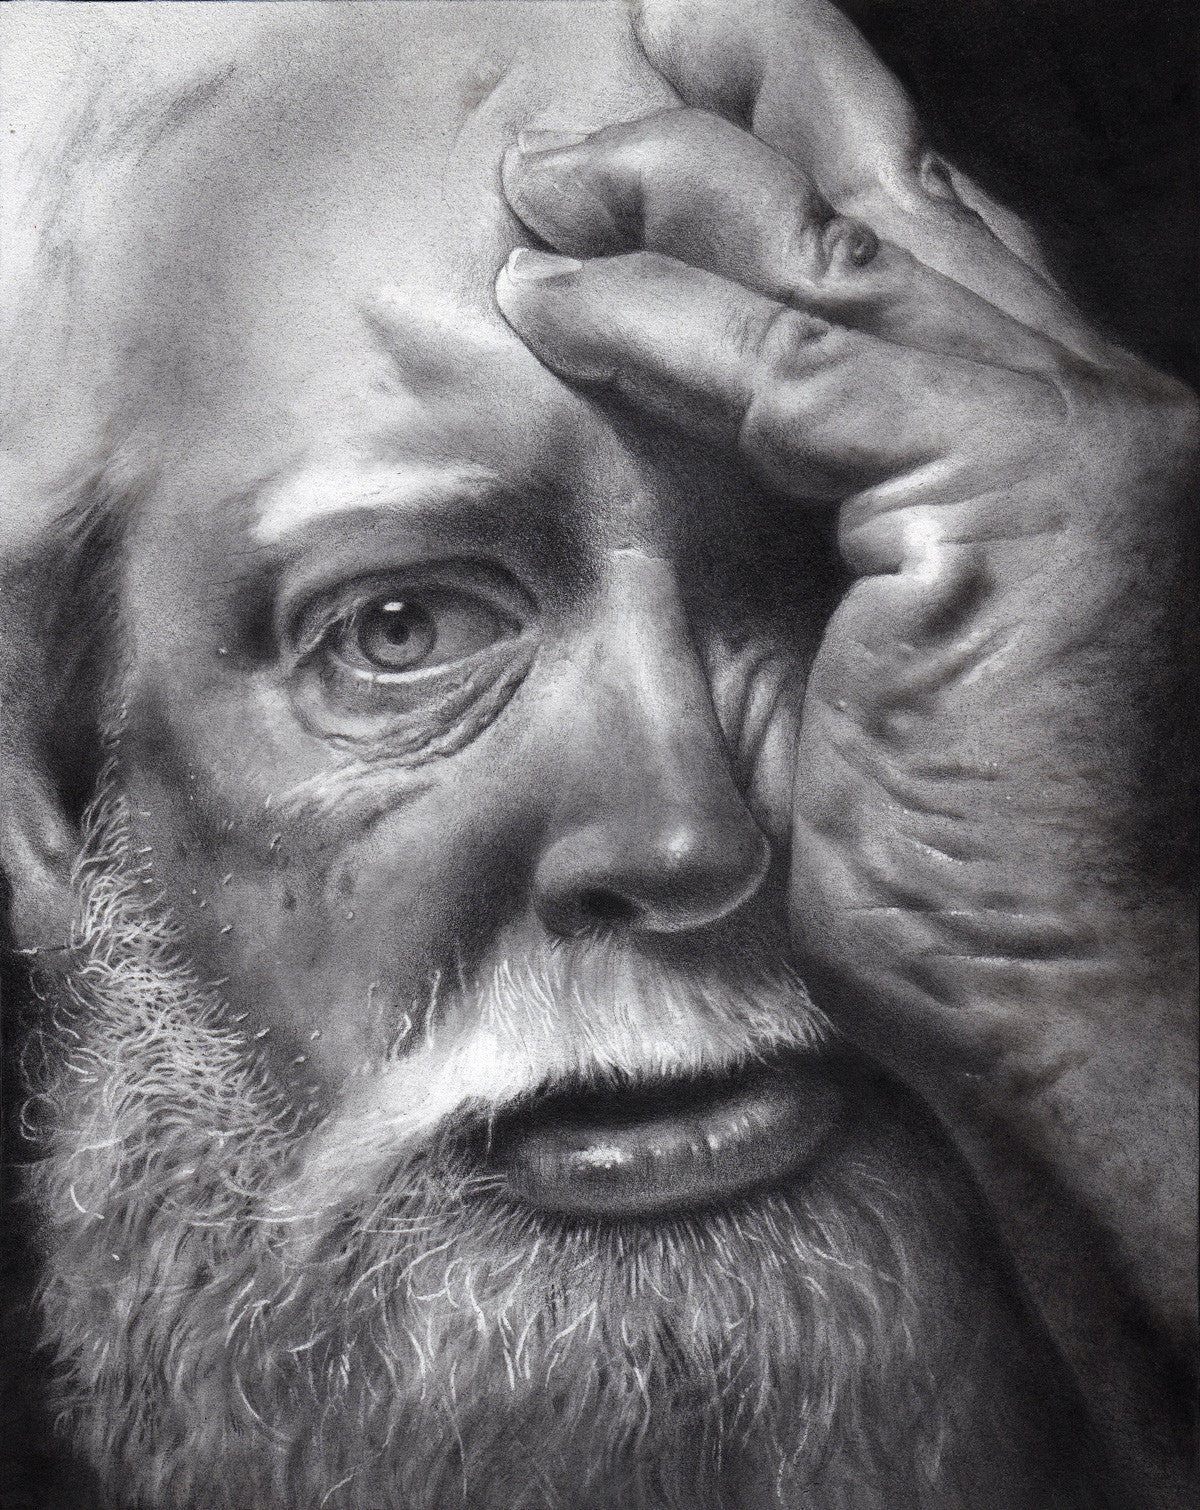 All Dark and Comfortless (W.Shakespeare - King Lear, Portrait of Scott Reeves)